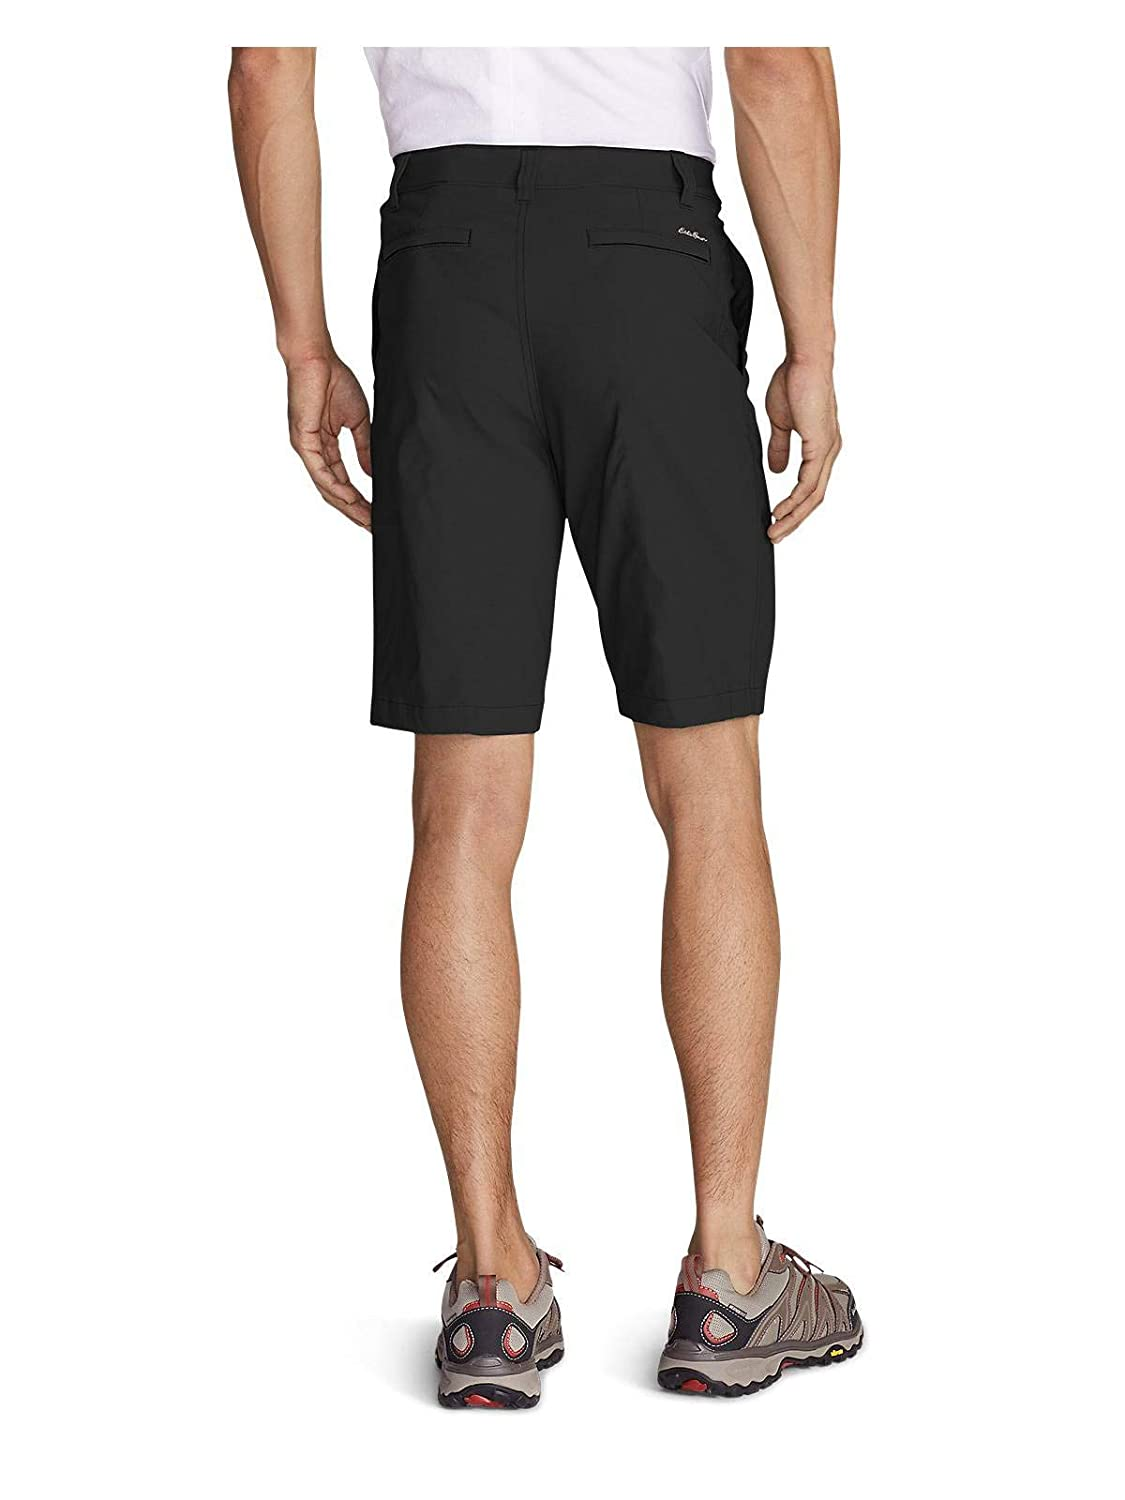 878a8346ce8f Eddie Bauer Men s Lined Guide Commando Shorts at Amazon Men s Clothing  store